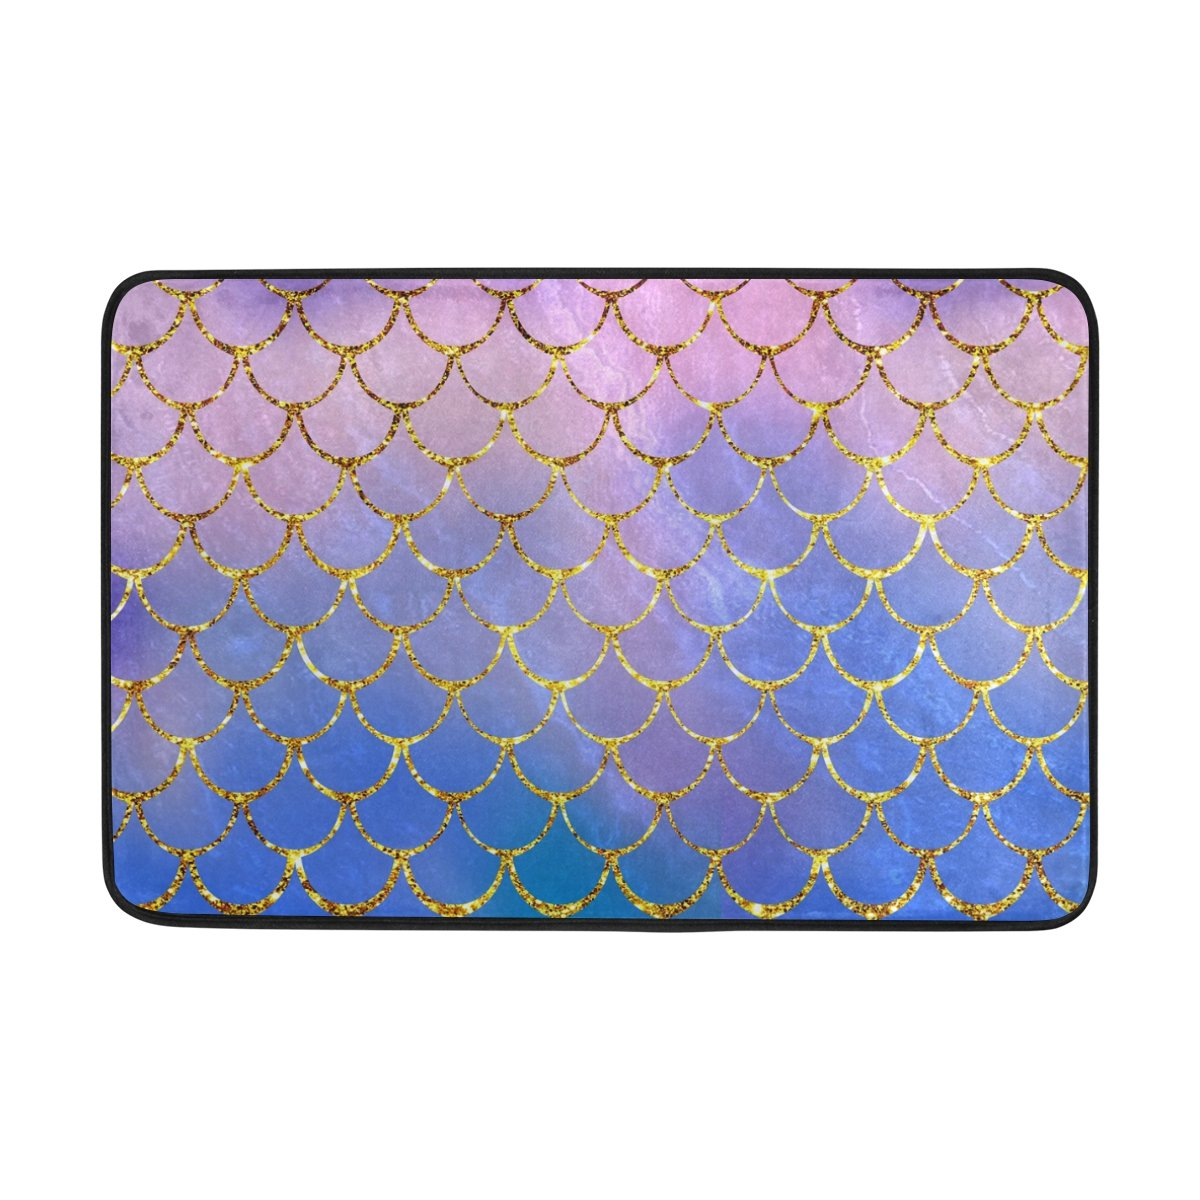 ALAZA Bath Mat Non Slip Super Absorbent Purple Mermaid Scales Marble Fish Light Summer Gold Bathroom Rug Indoor Carpet Doormat Floor Dirt Trapper Mats Shoes Scraper 24x16 inch by ALAZA